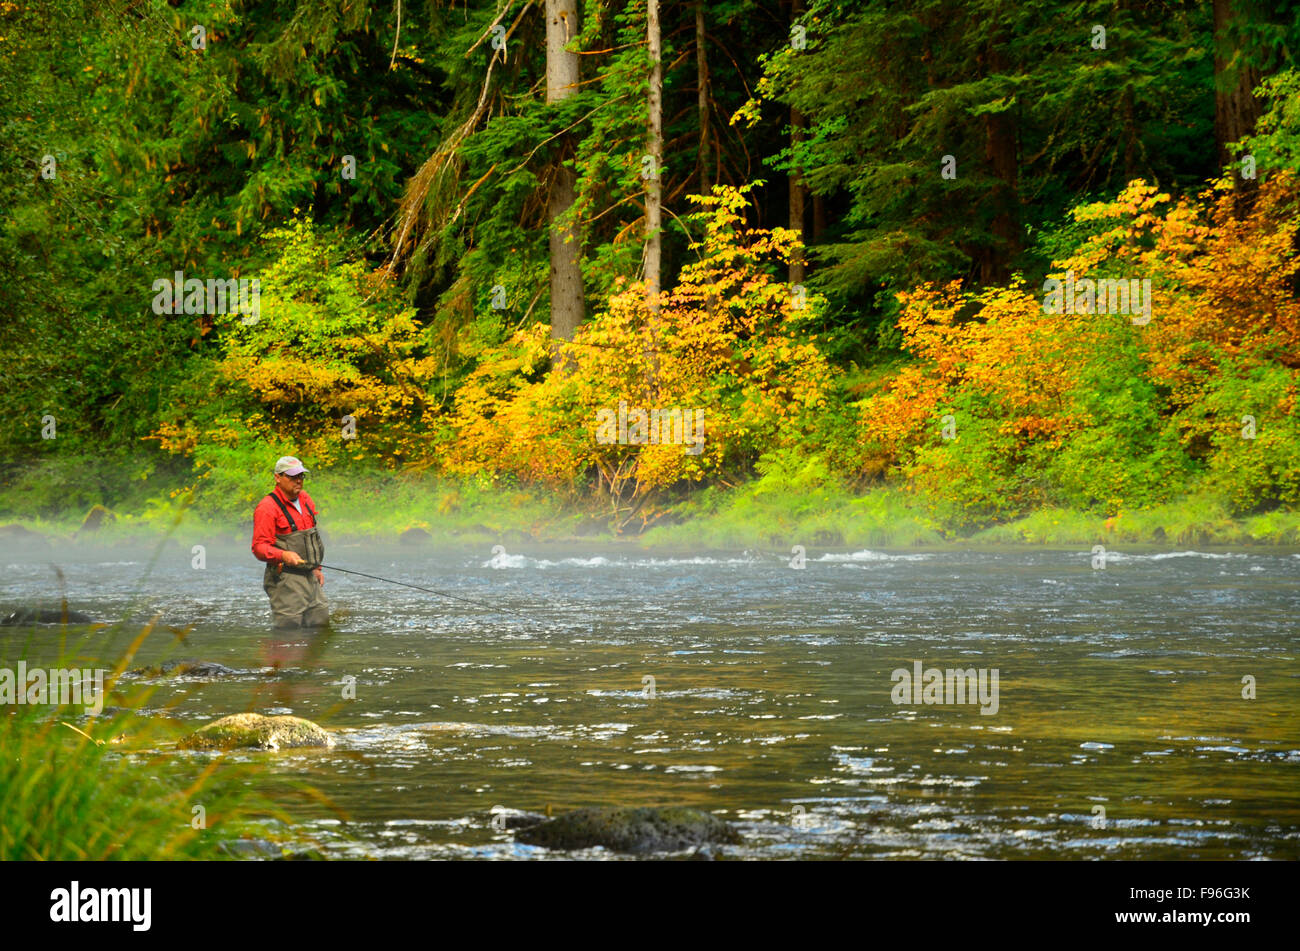 Steelhead Fishing, Umqua River, Oregon, USA - Stock Image